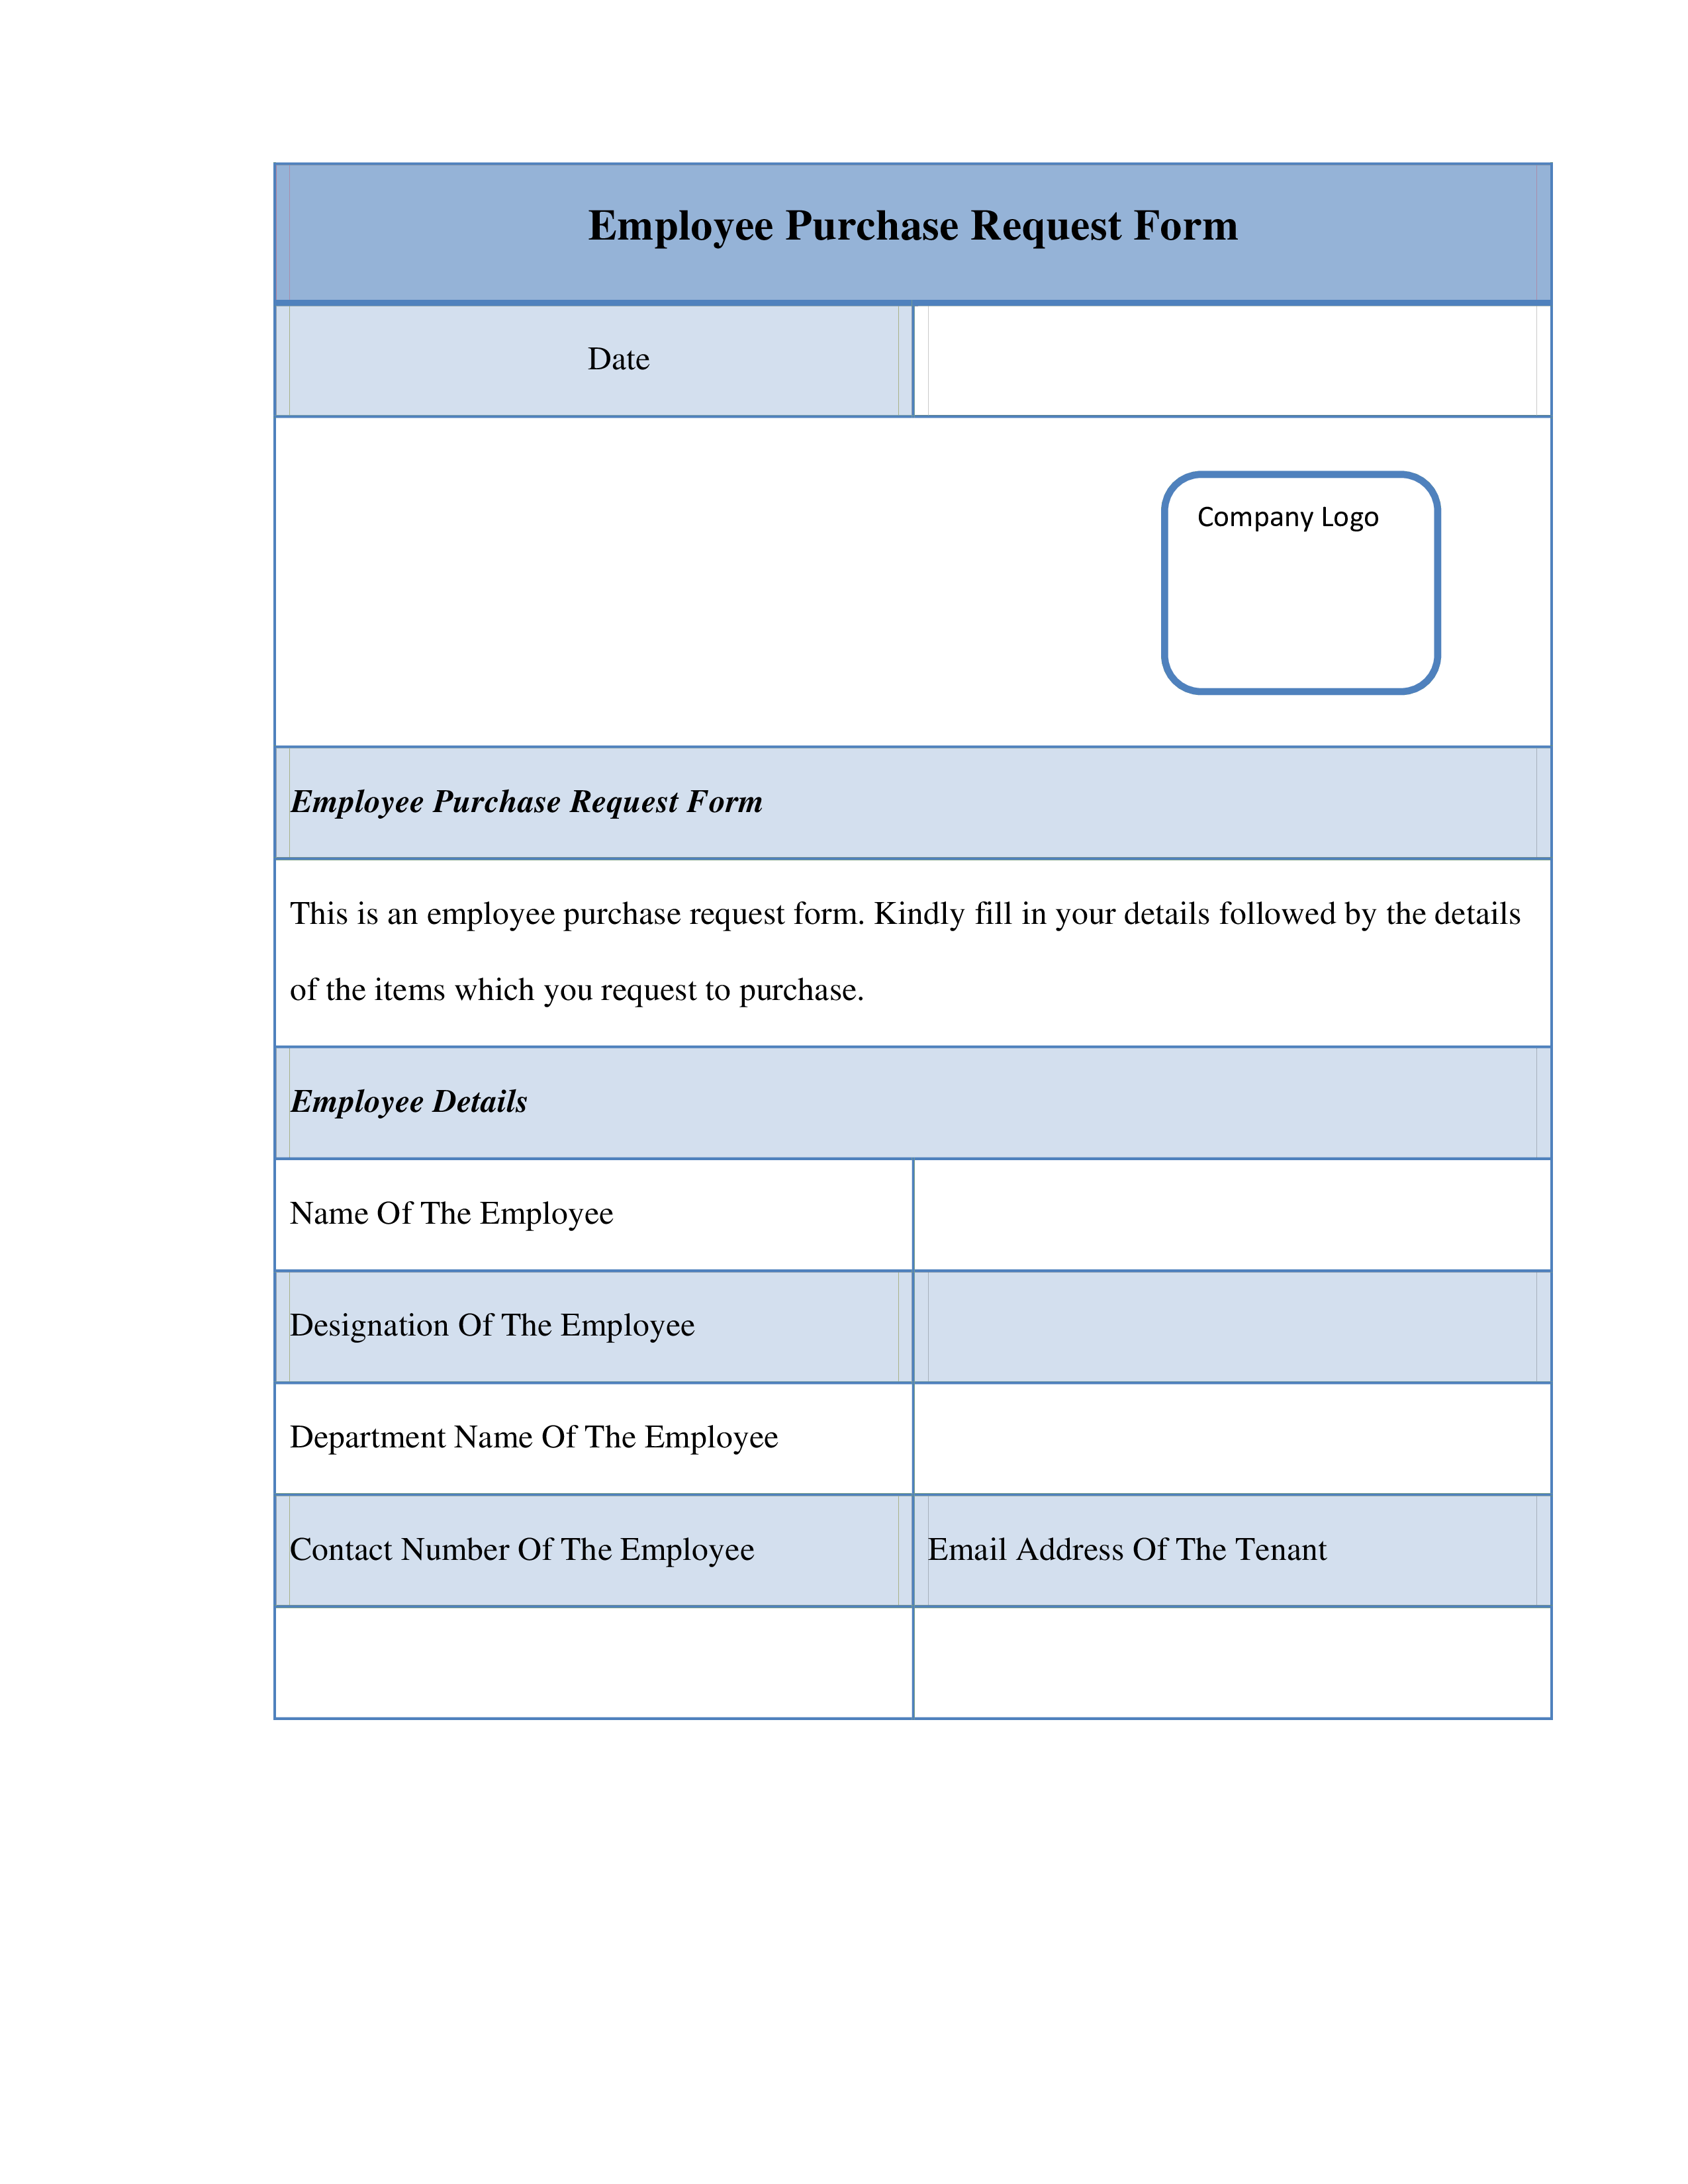 Free Employee Purchase Request Form | Templates at ...